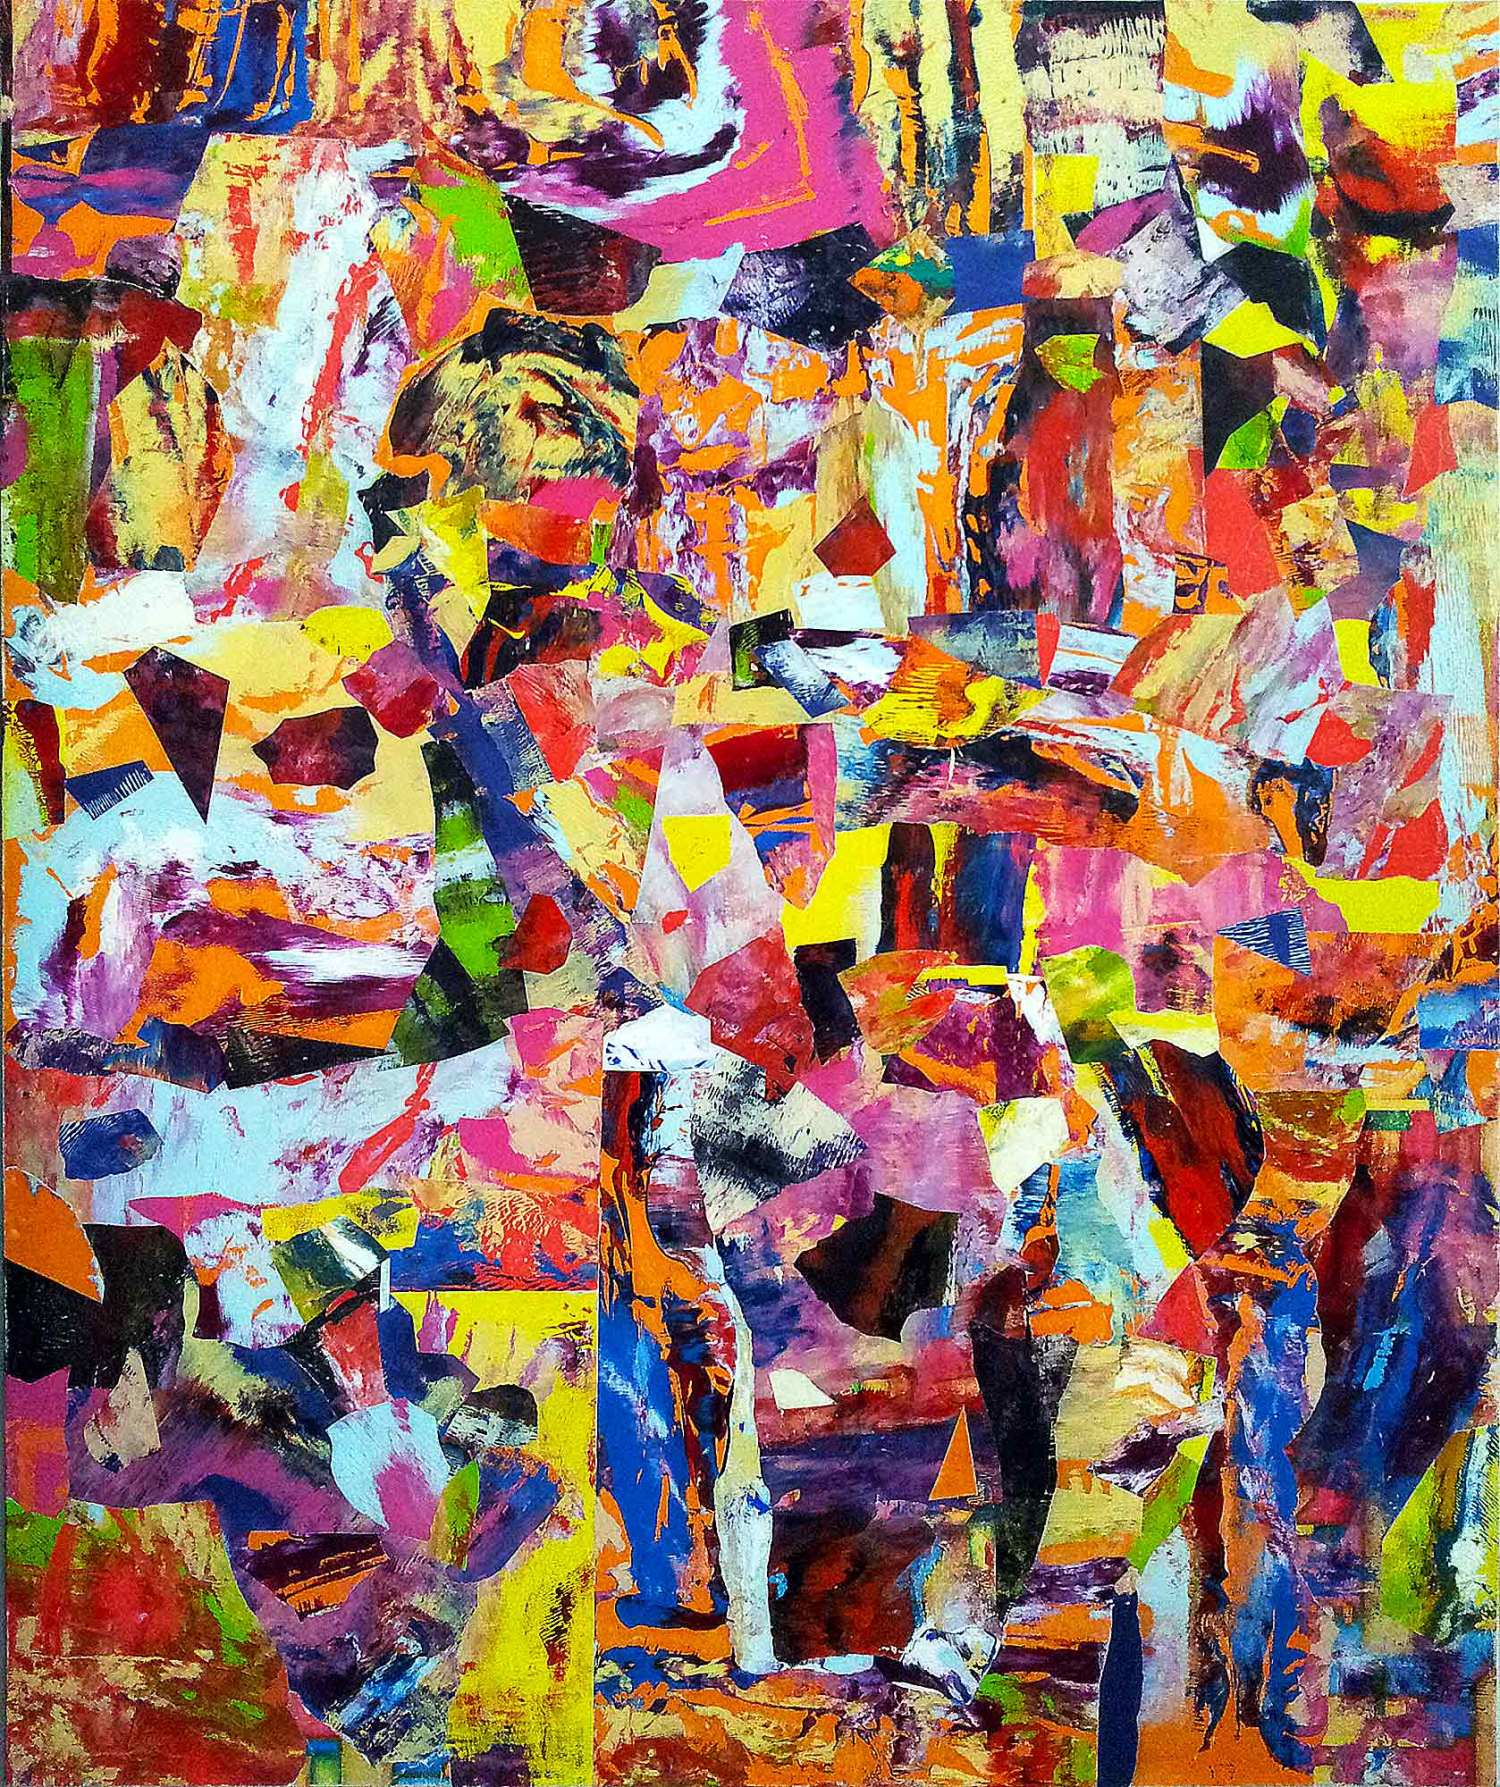 different eyes see different things - 120 x 100 cm - acrylic and collage on canvas - 2015